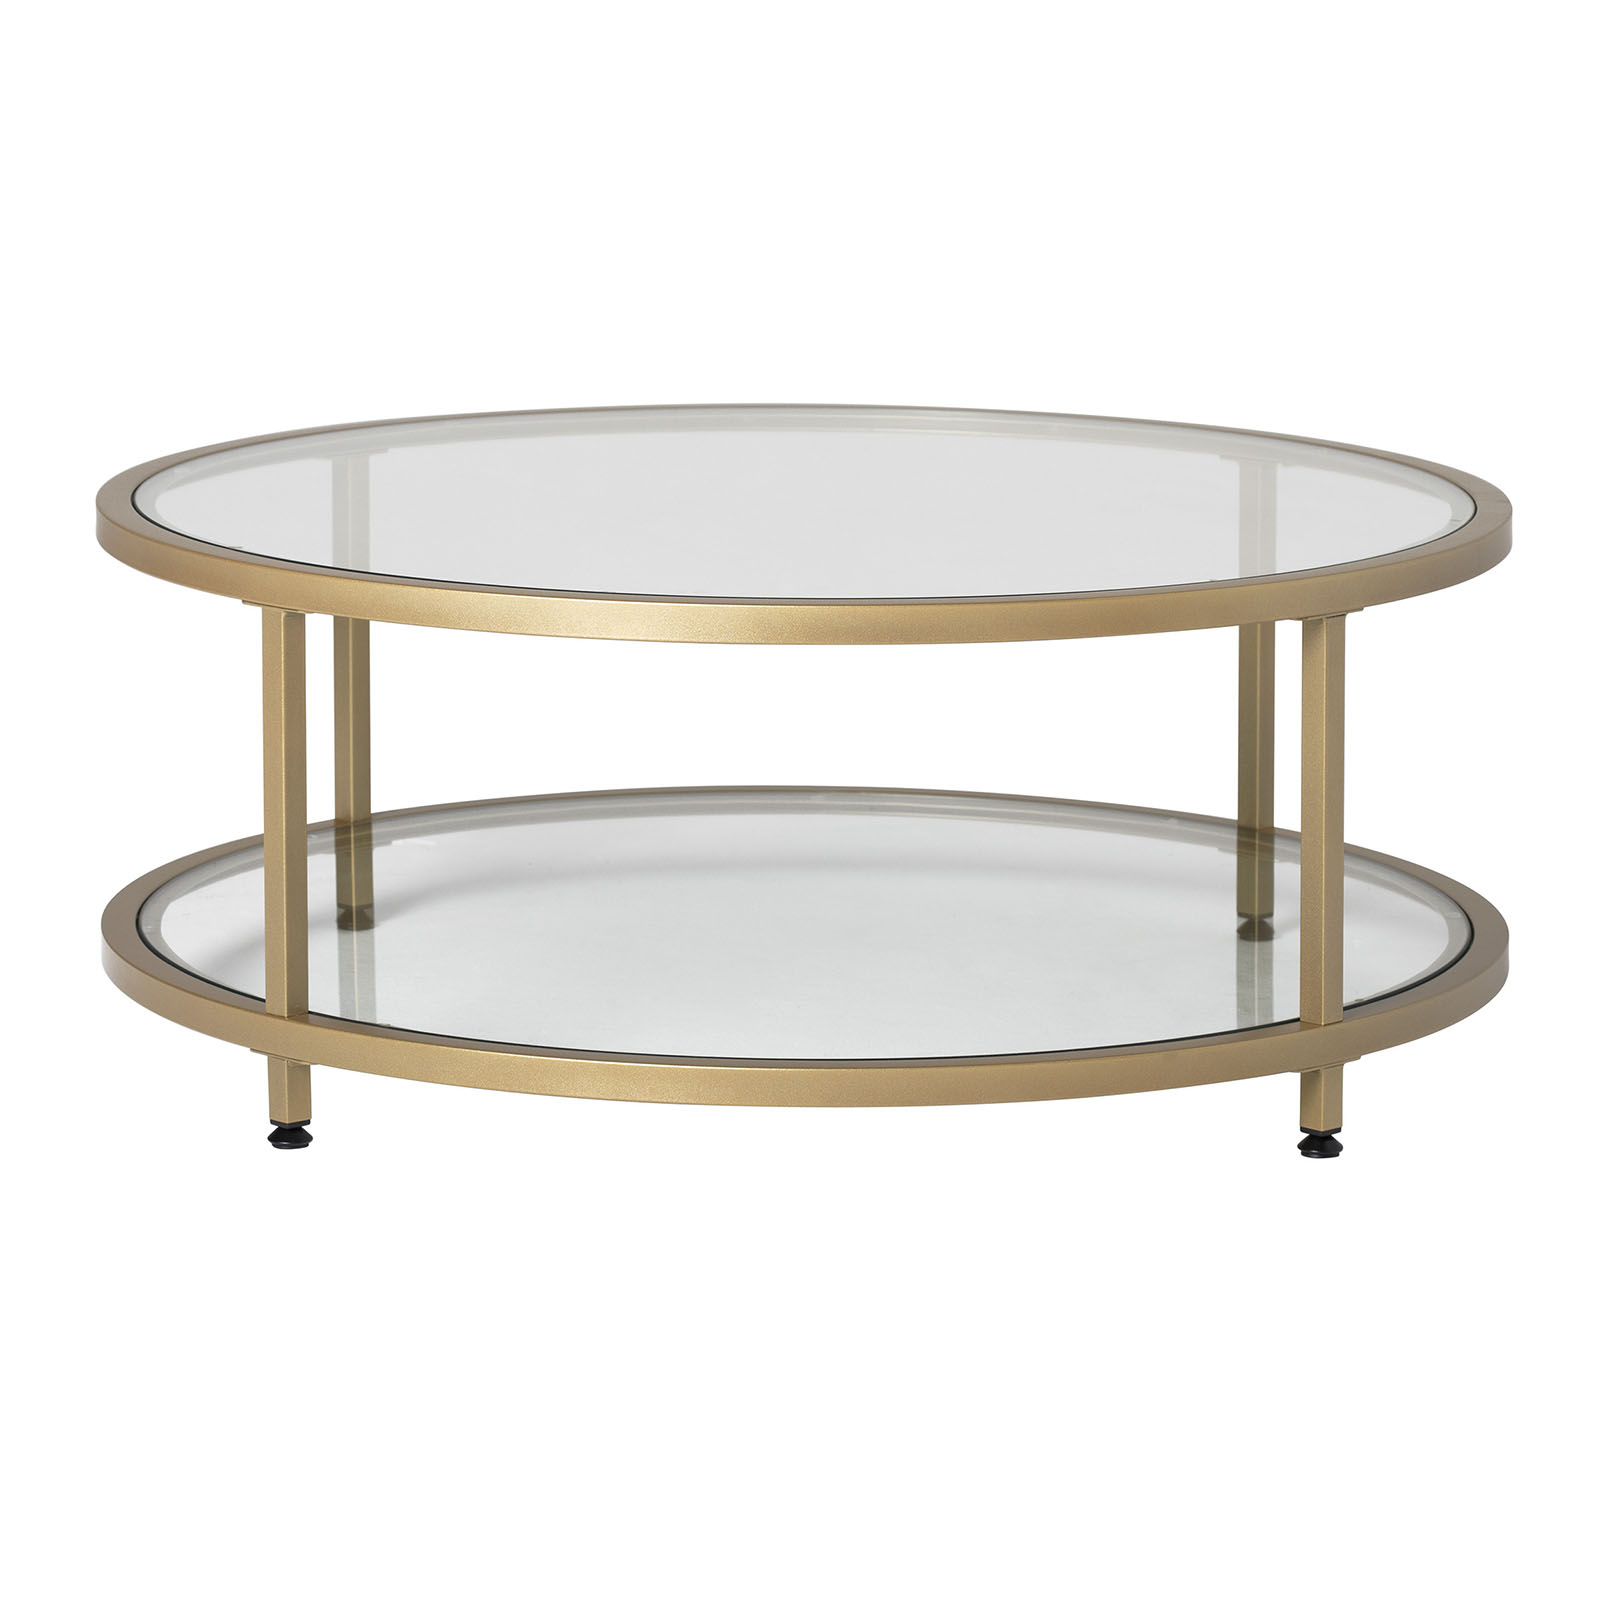 71032 Camber Round Coffee Table side